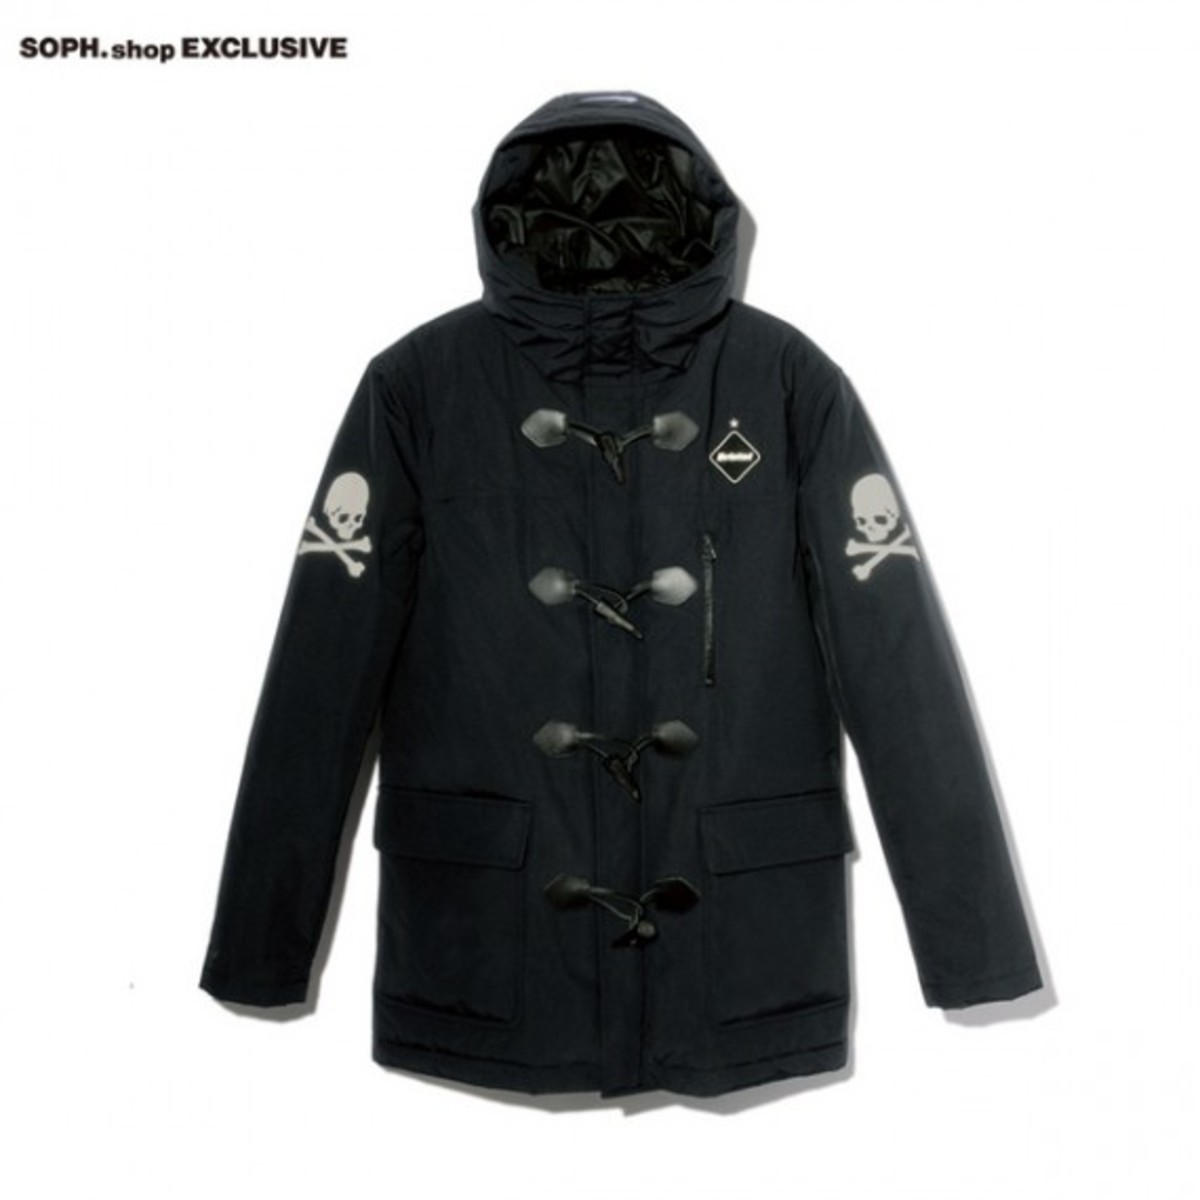 f-c-r-b-x-mastermind-japan-fallwinter-2012-outerwear-collection-15